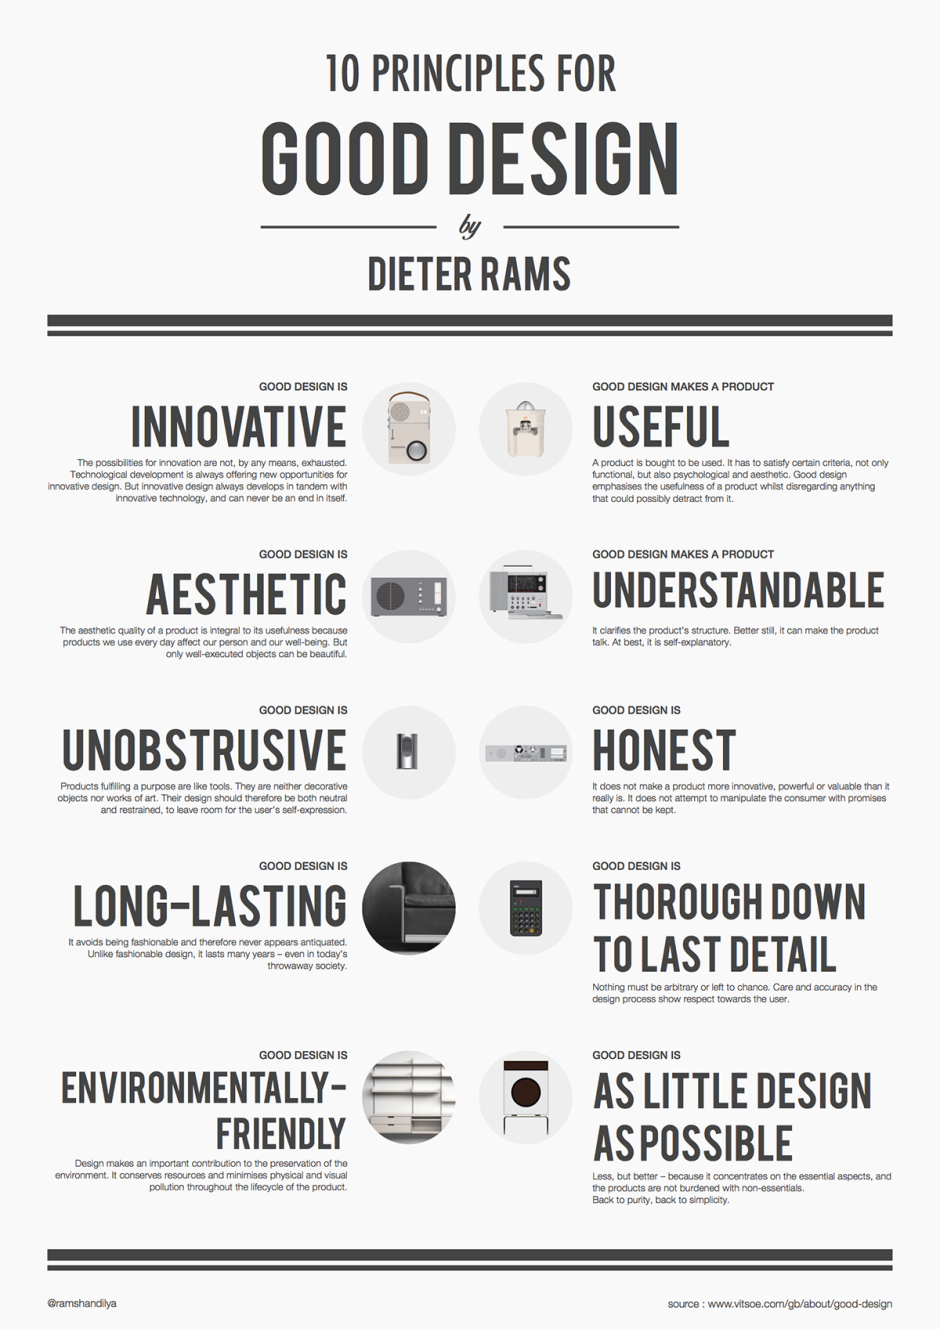 Dieter Rams 10 Principles For Good Design With Images Design